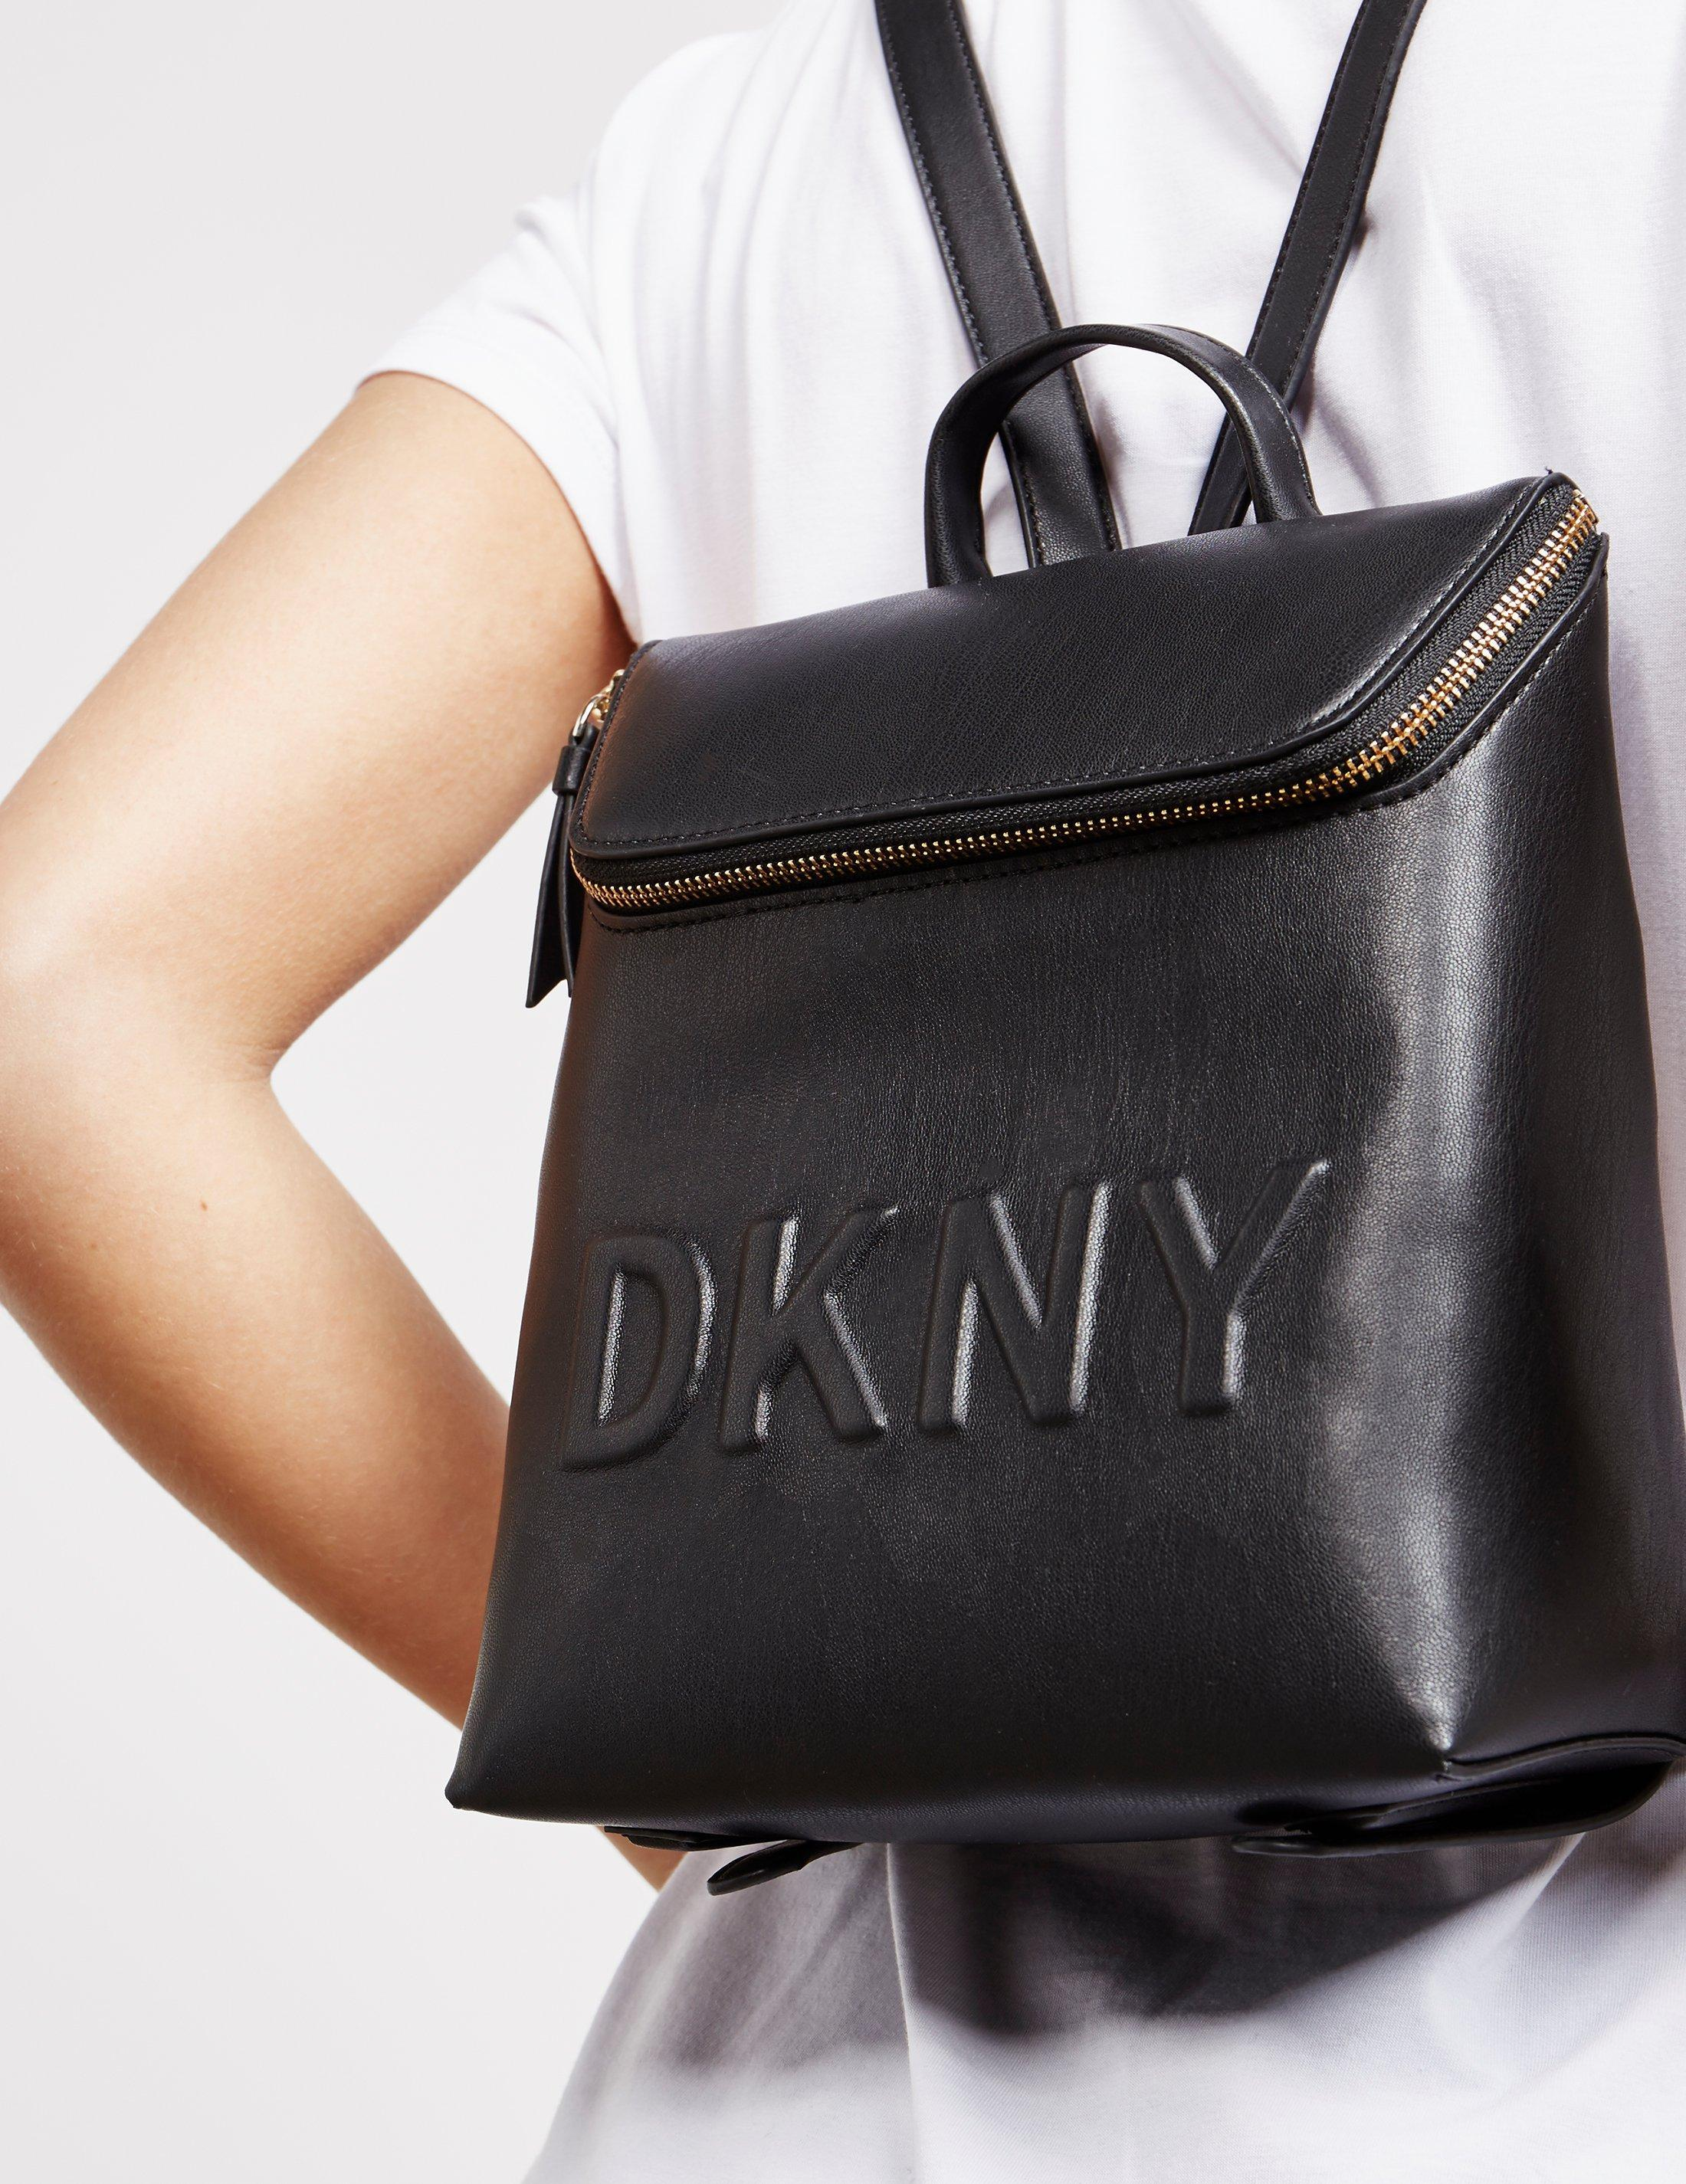 93c84dddea4a Lyst - DKNY Womens Tilly Backpack - Online Exclusive Black in Black